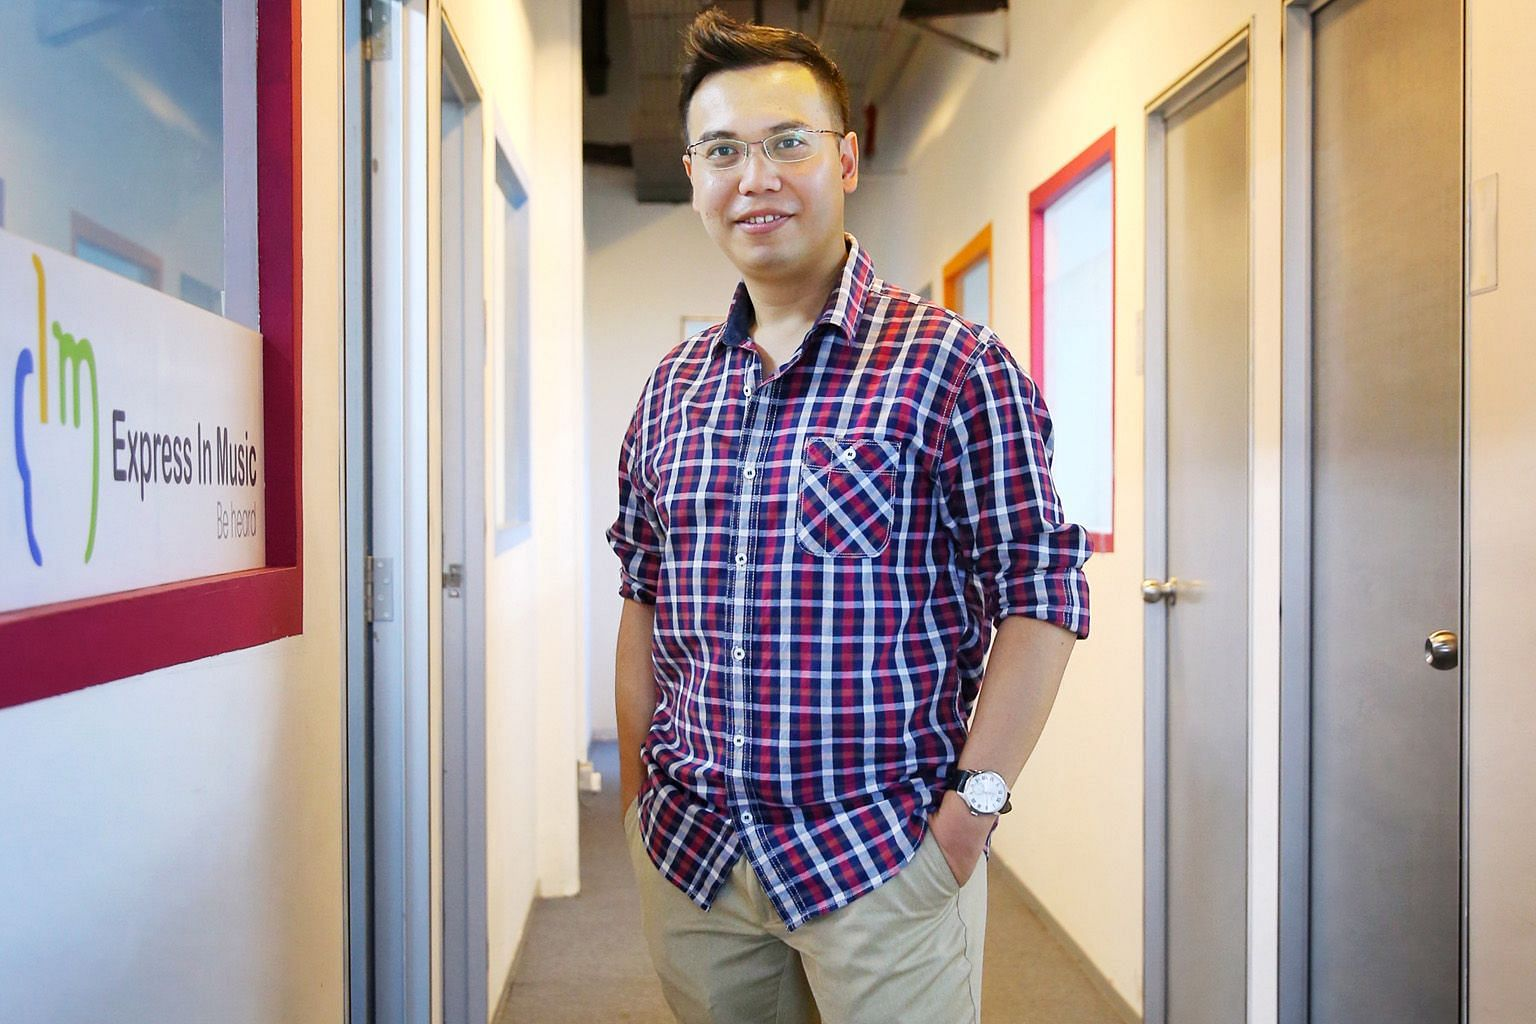 Mr Jerry Chen, who started piped music provider Express in Music in 2009 with a friend, believes cash is king and plans to set aside a small fund and look at potential start-ups with good business propositions in South-east Asia. He also plans to han